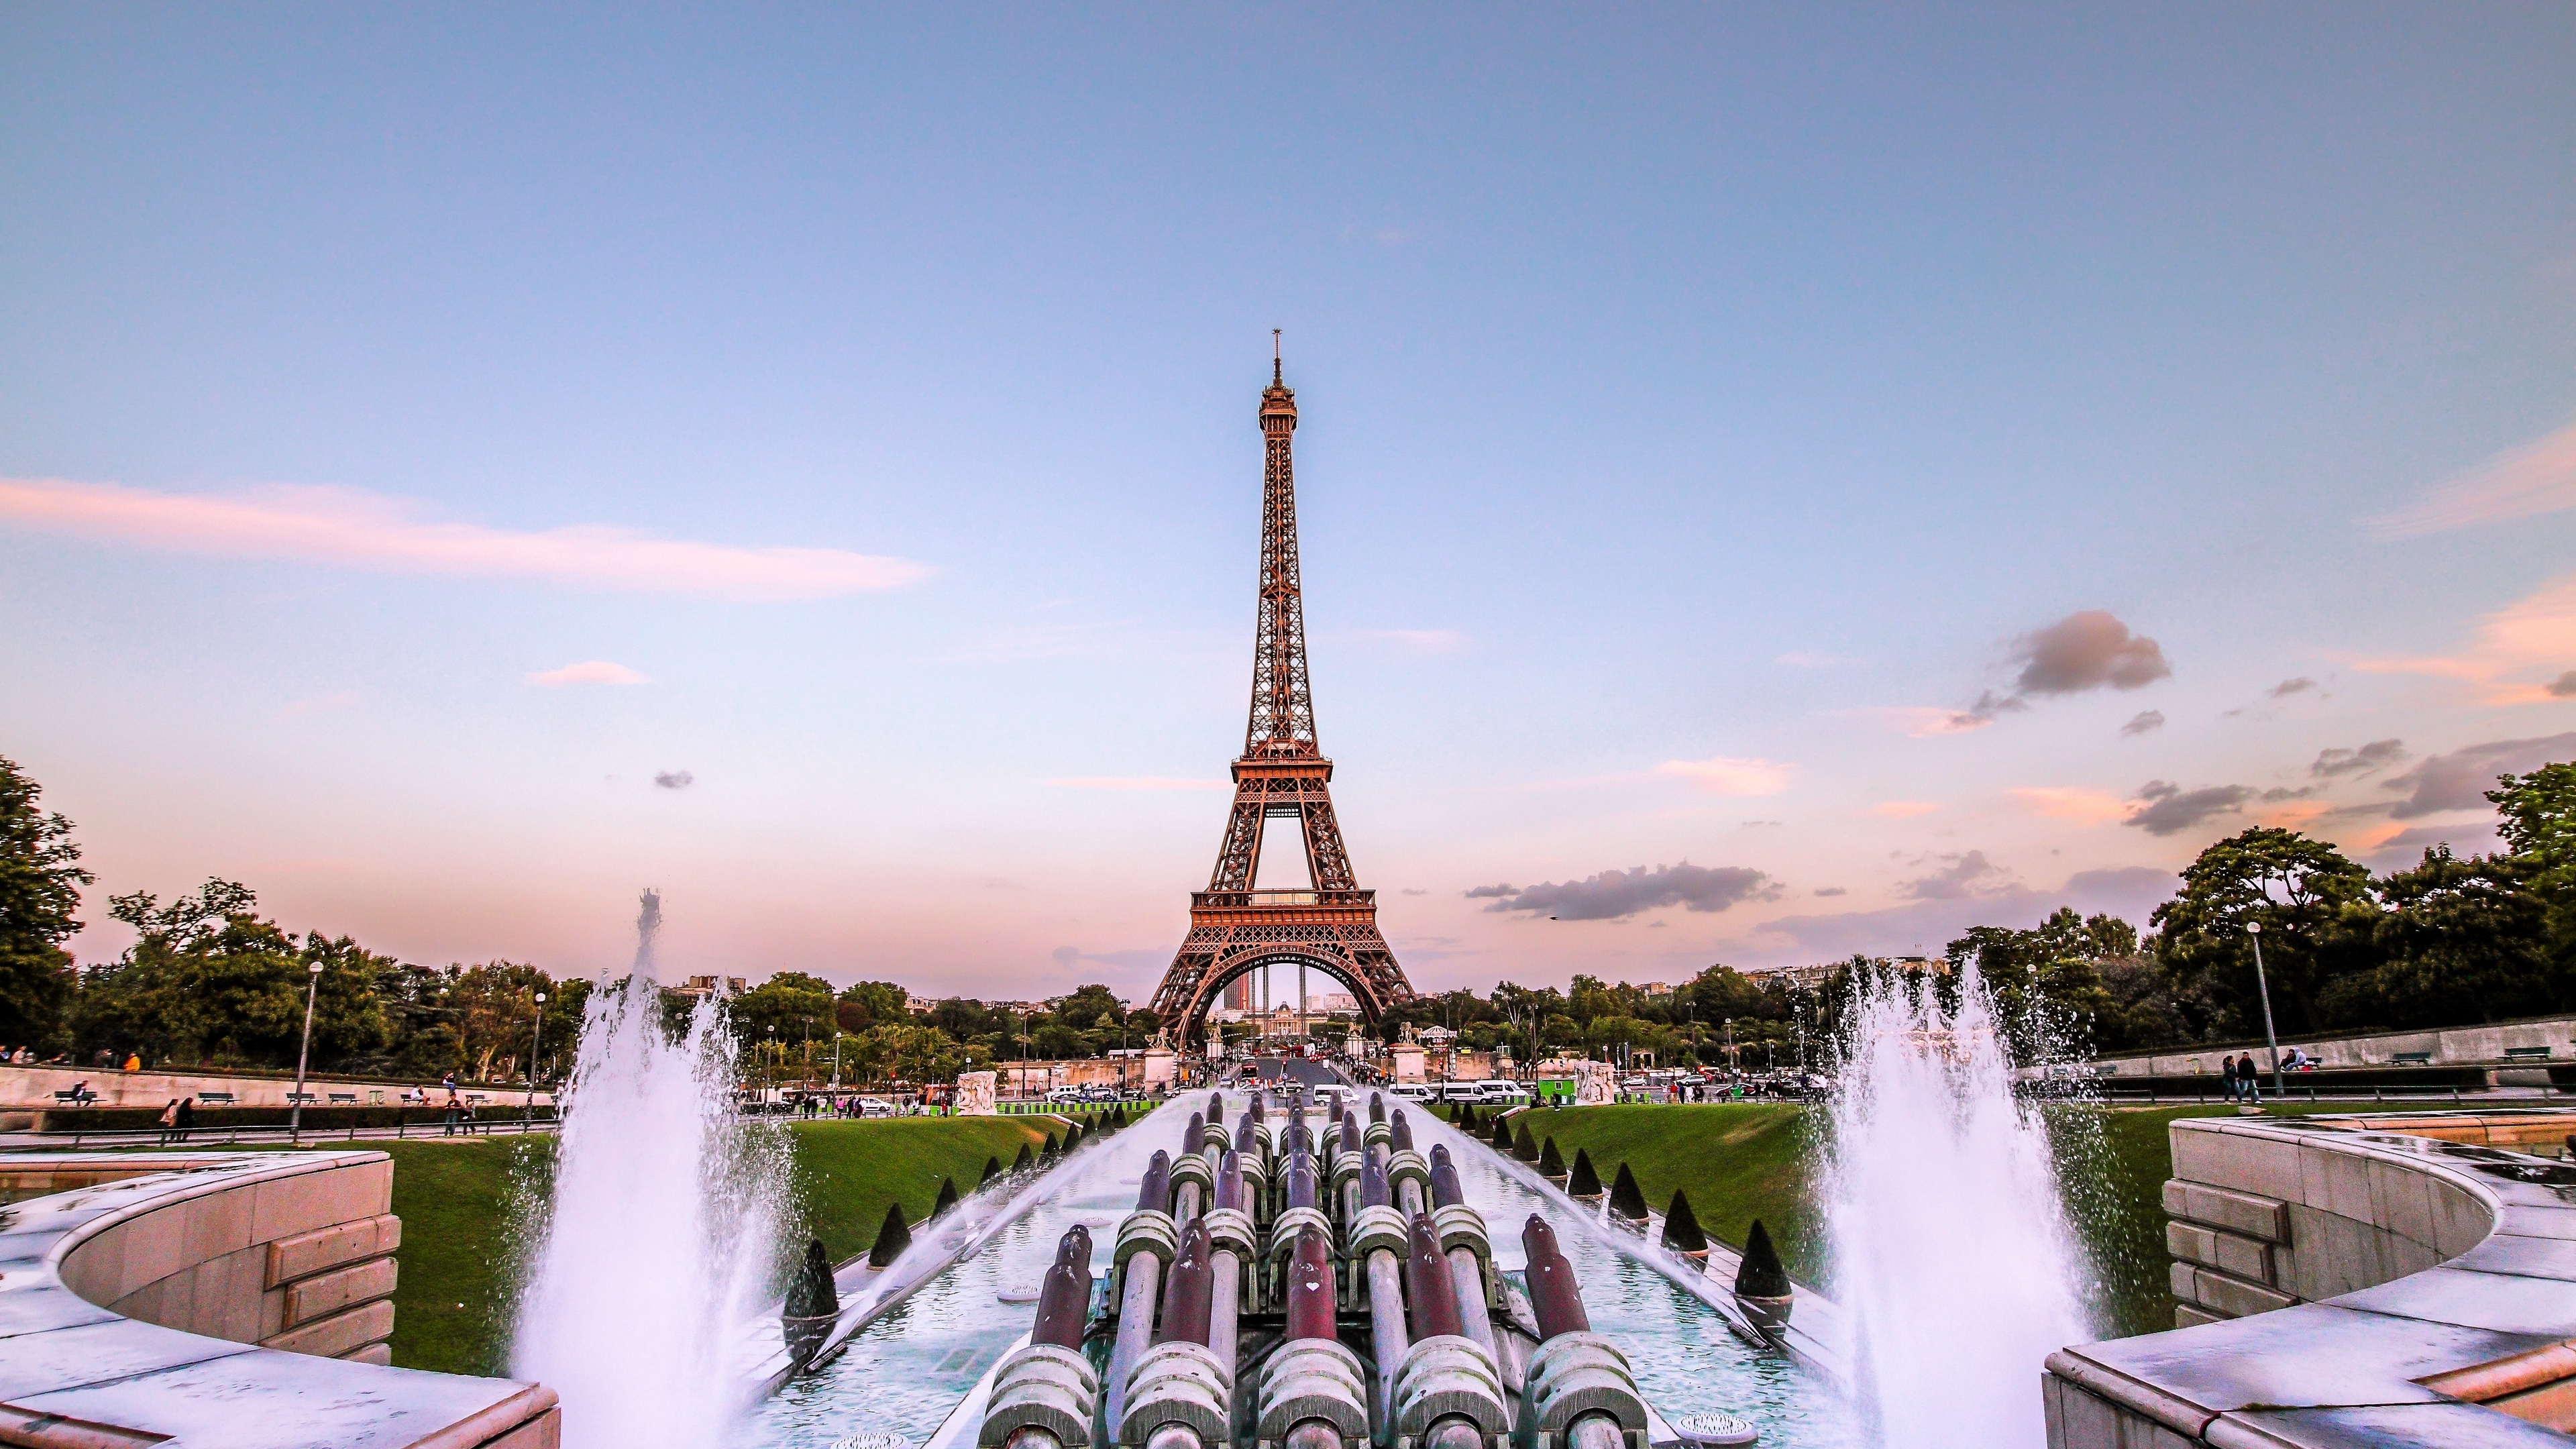 Wallpaper 4k Eiffel Tower Paris Gold Evening France Fountain 4k Eiffel Tower Gold Evening Paris